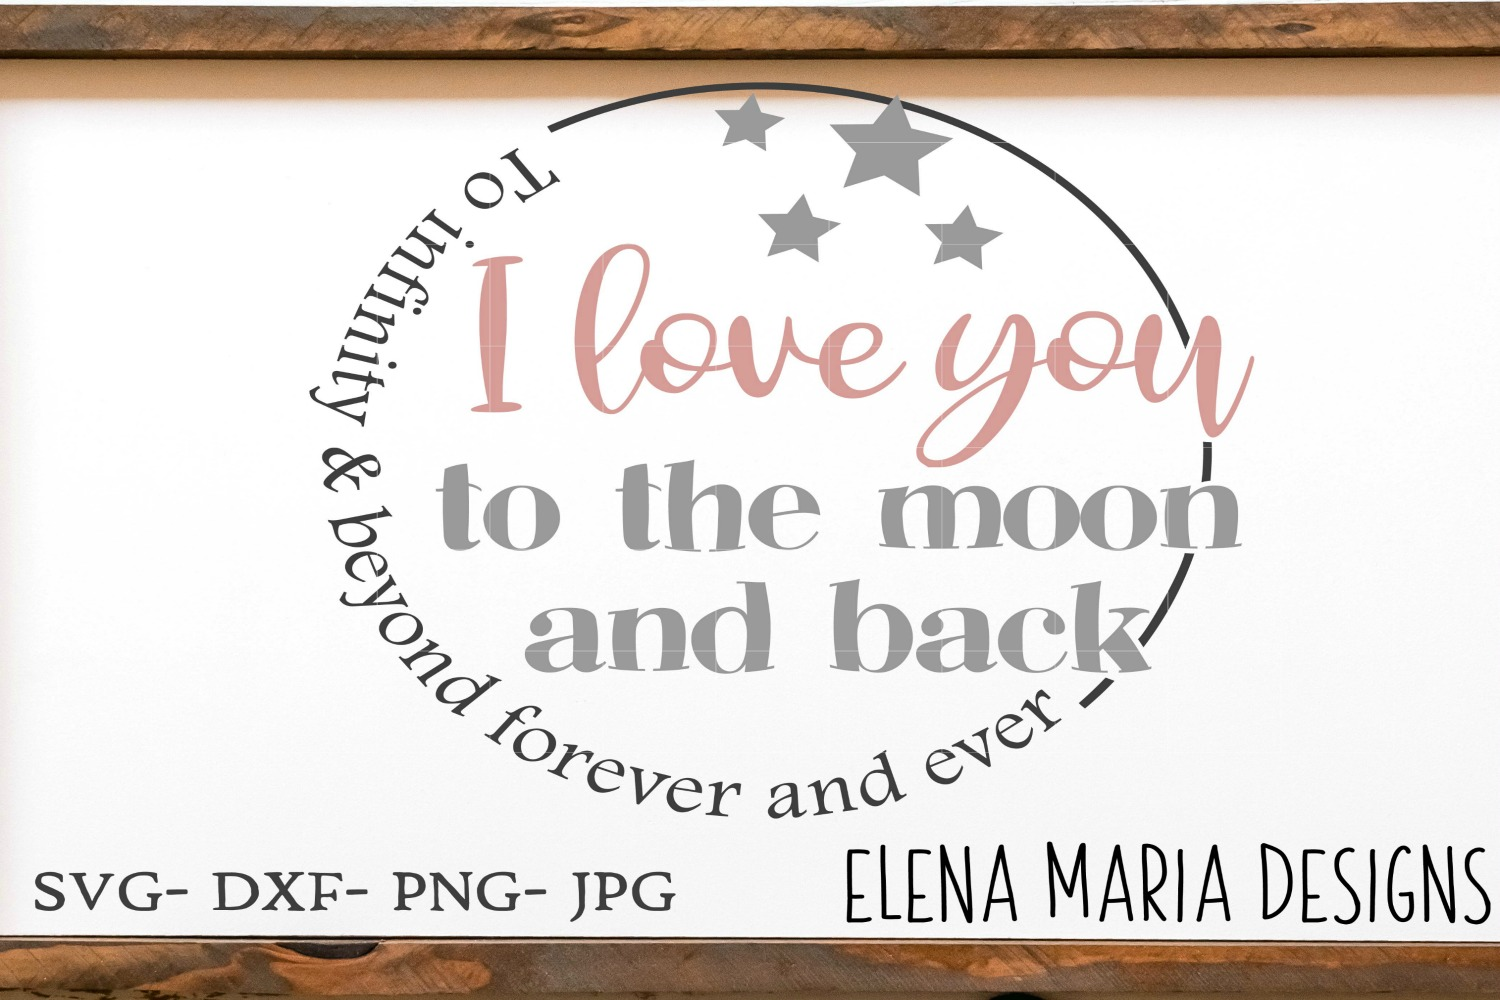 Nursery SVG, I Love You To The Moon And Back SVG example image 1